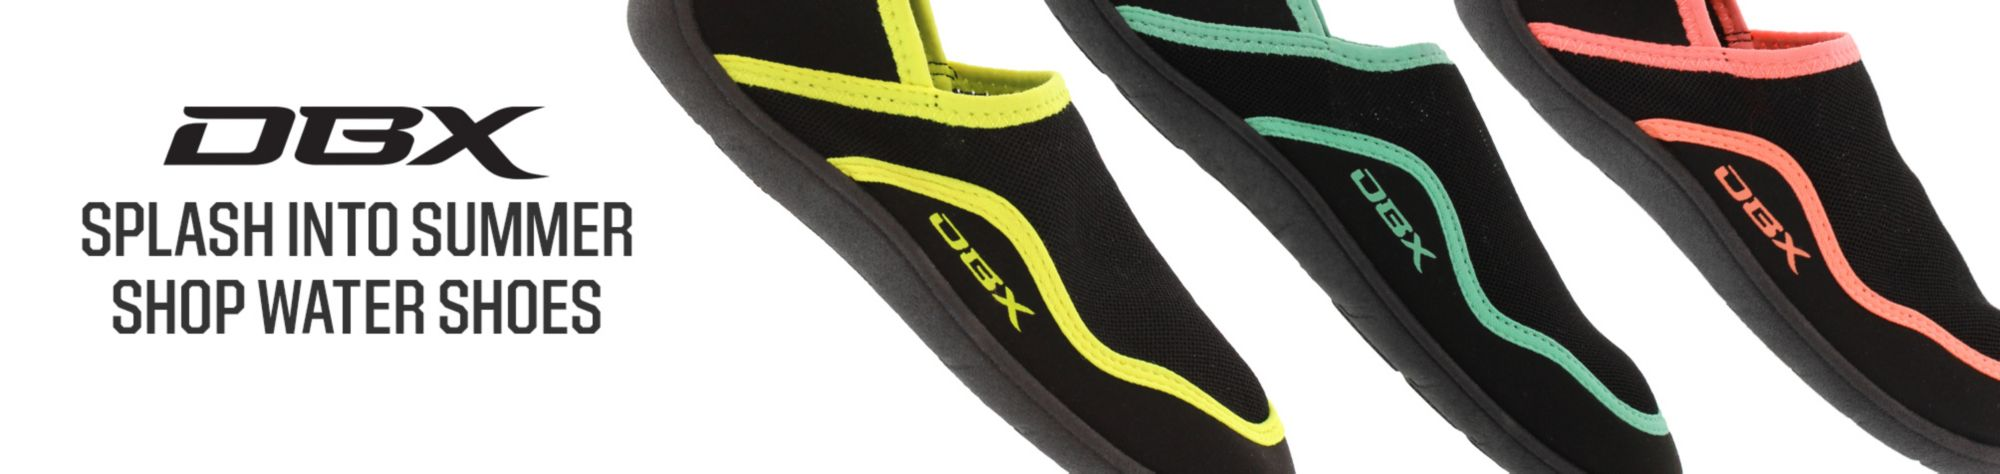 Shop DBX Water Shoes